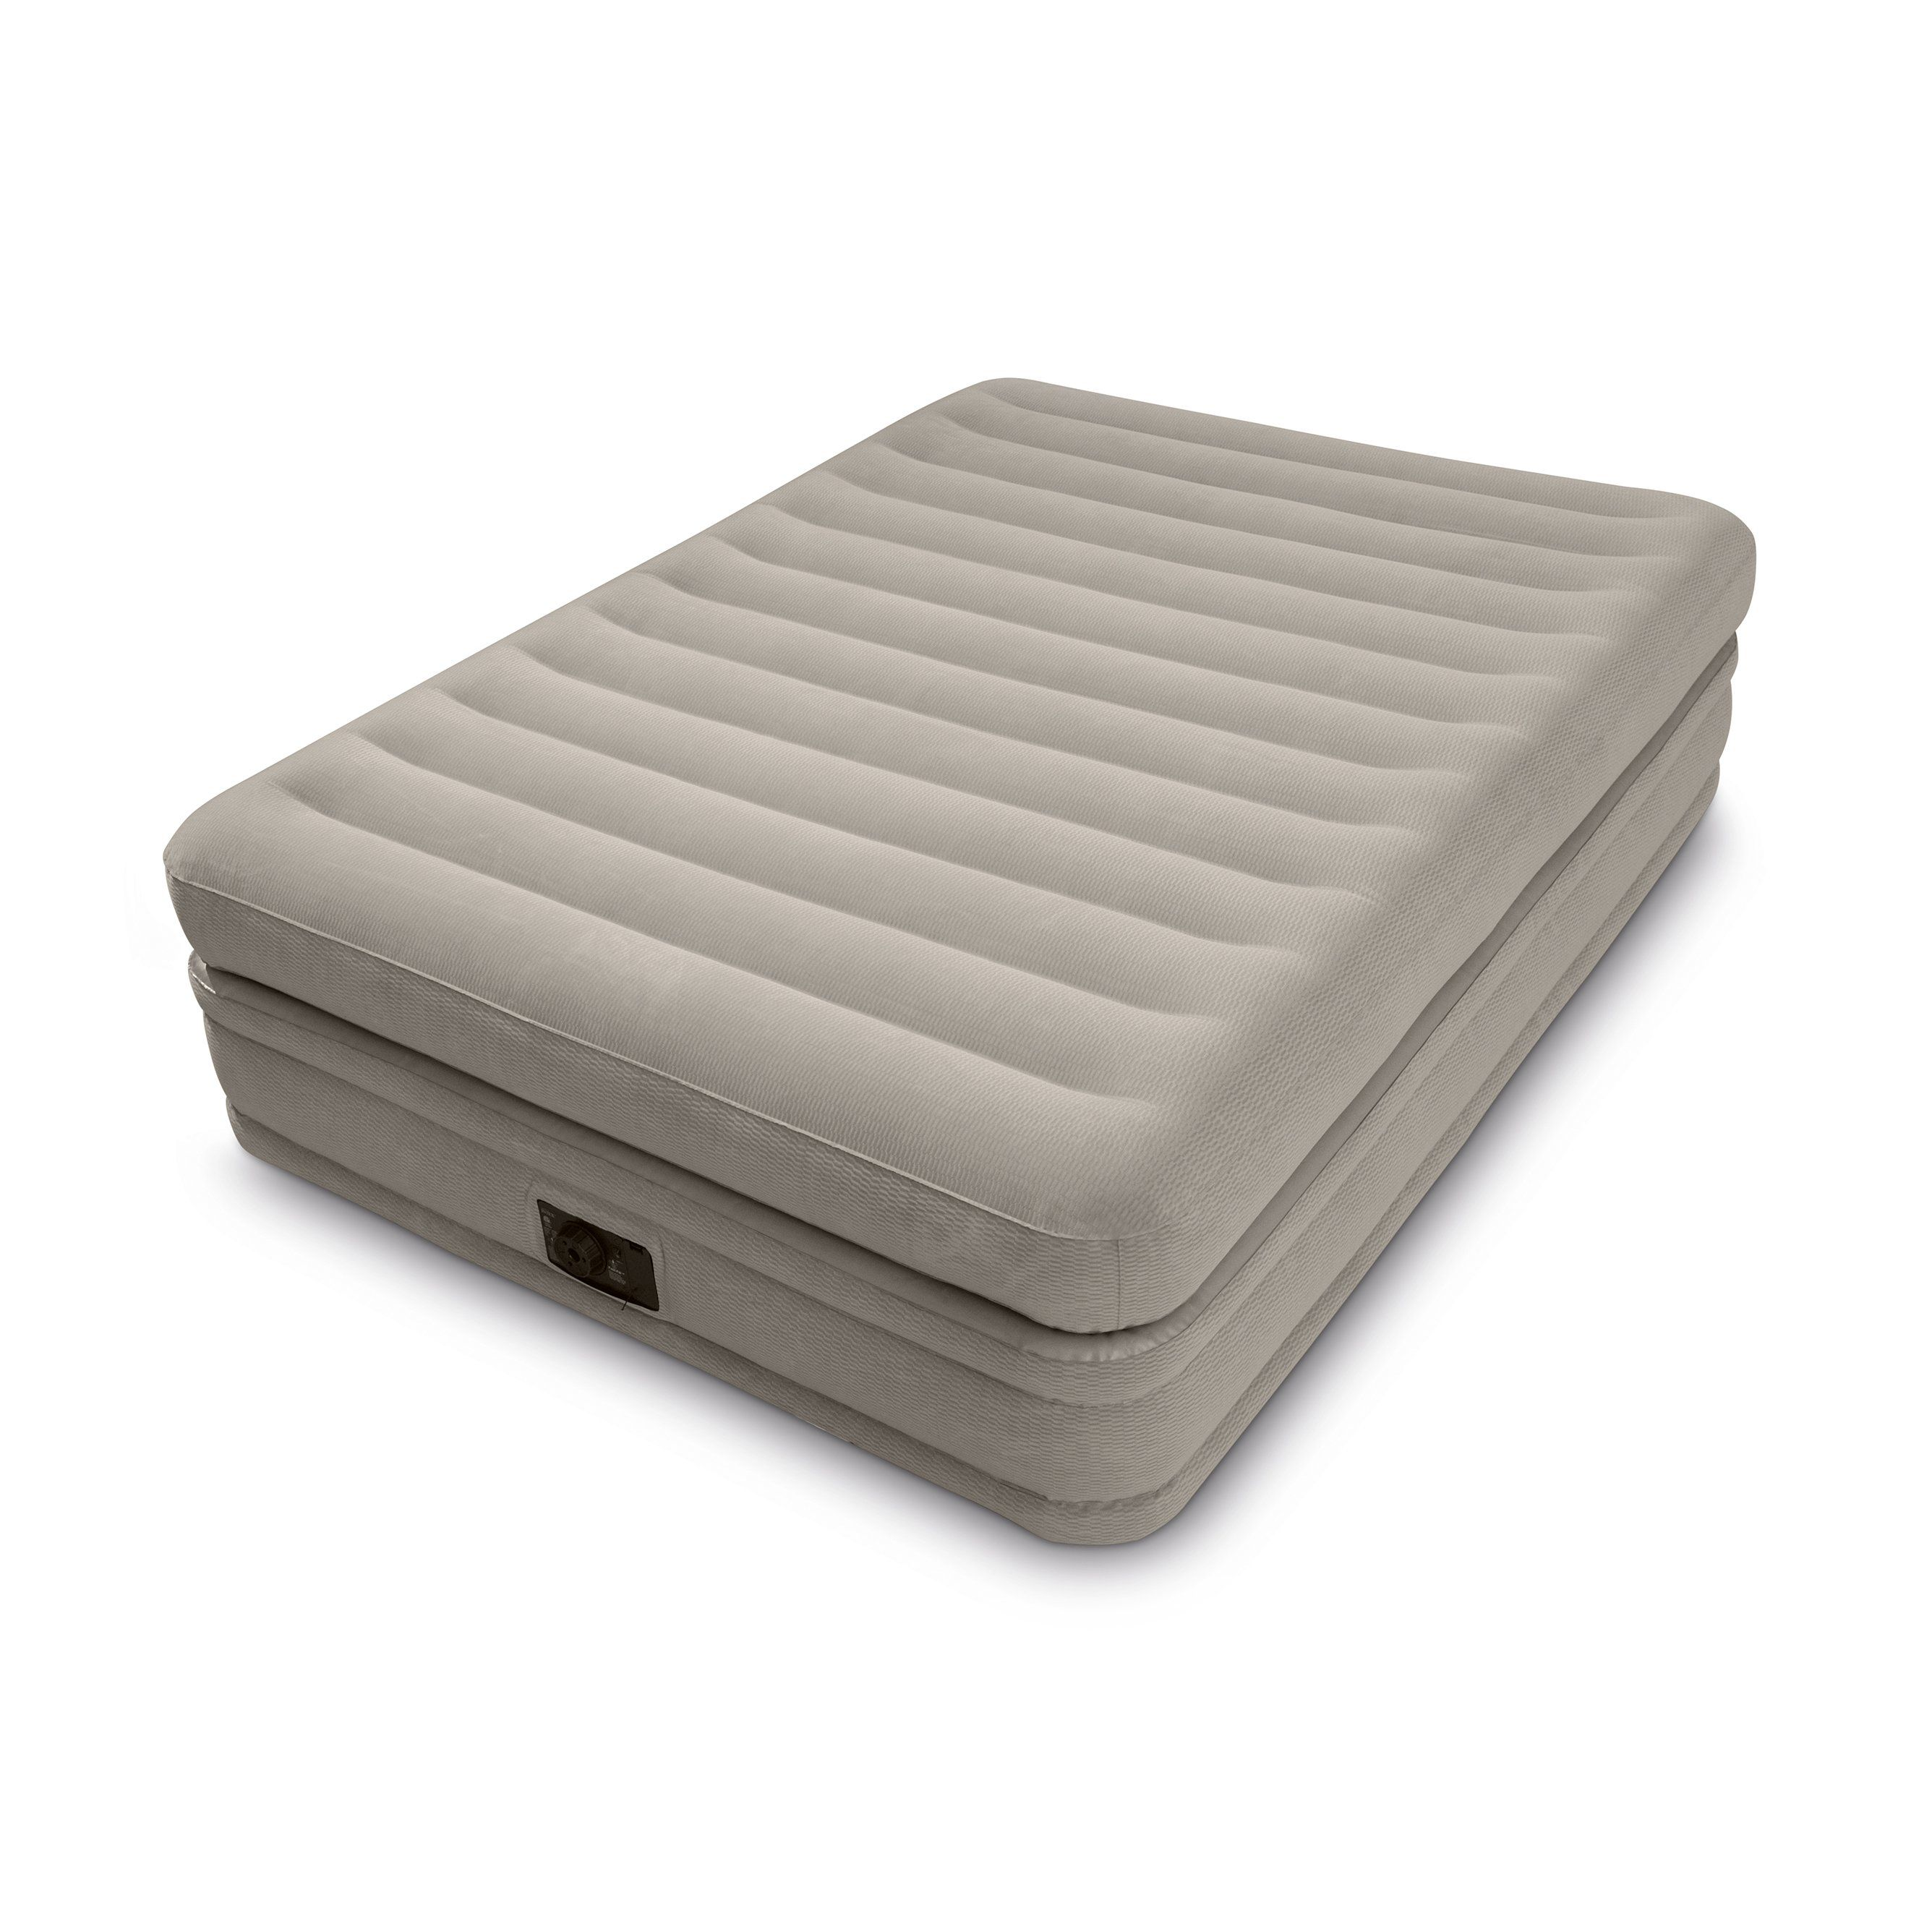 Intex Inflatable Prime Comfort Elevated Queen Airbed with